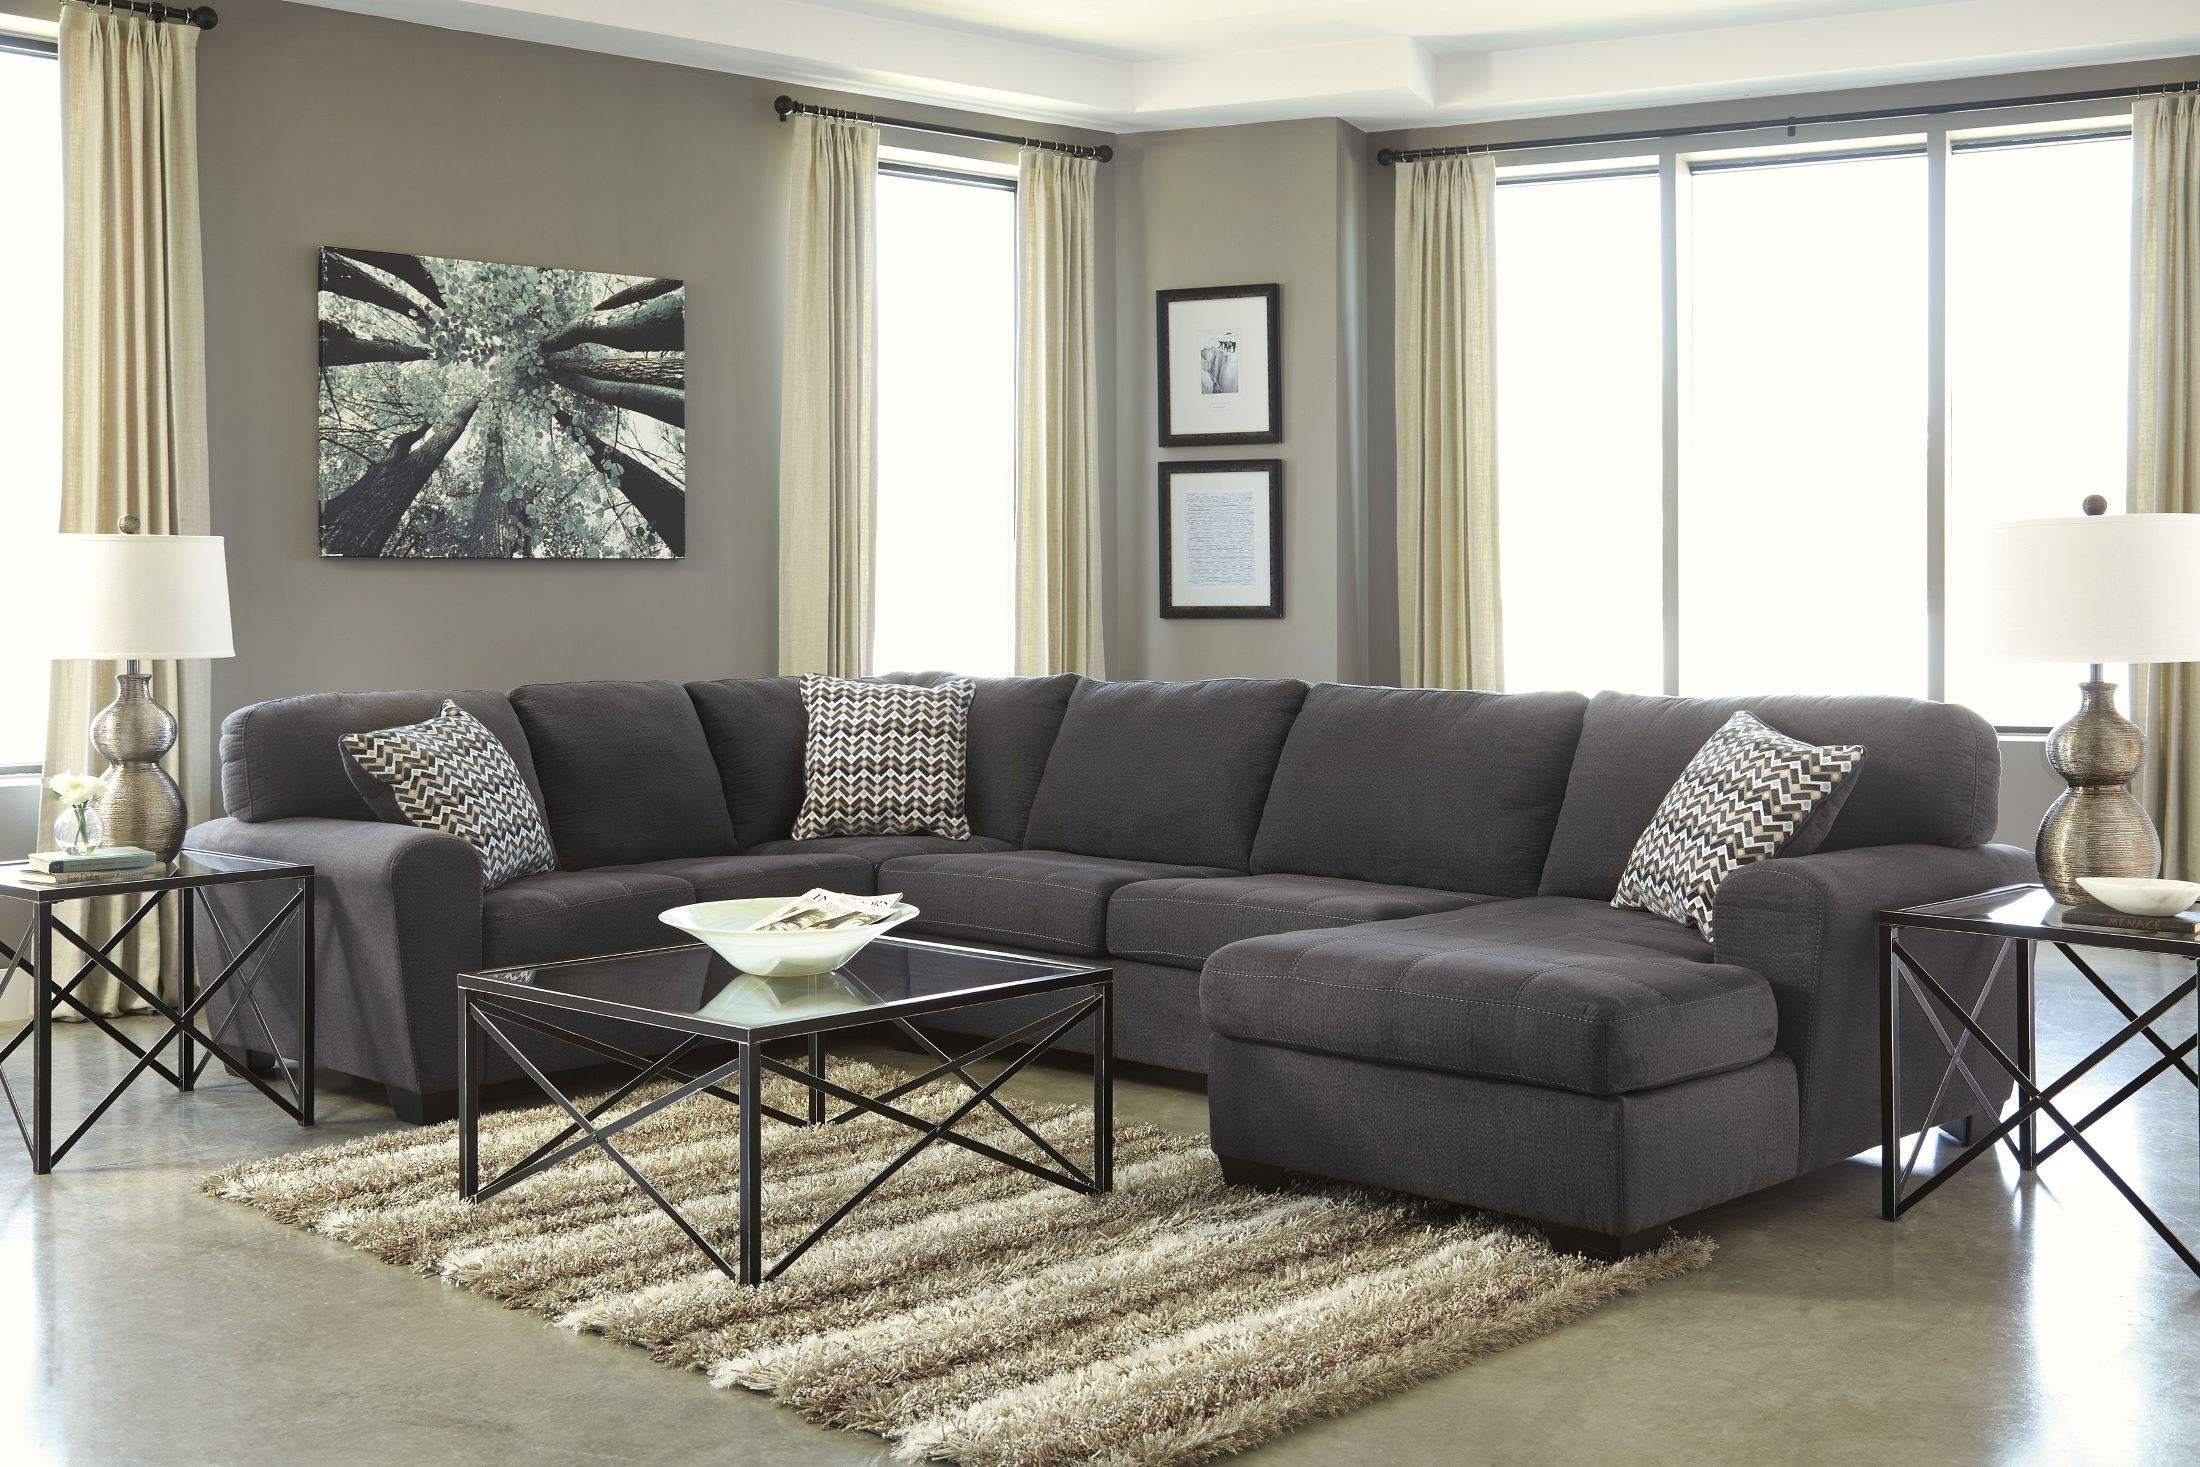 omaha sofa for sale by owner durable brands sorenton slate raf sectional from ashley 2860017